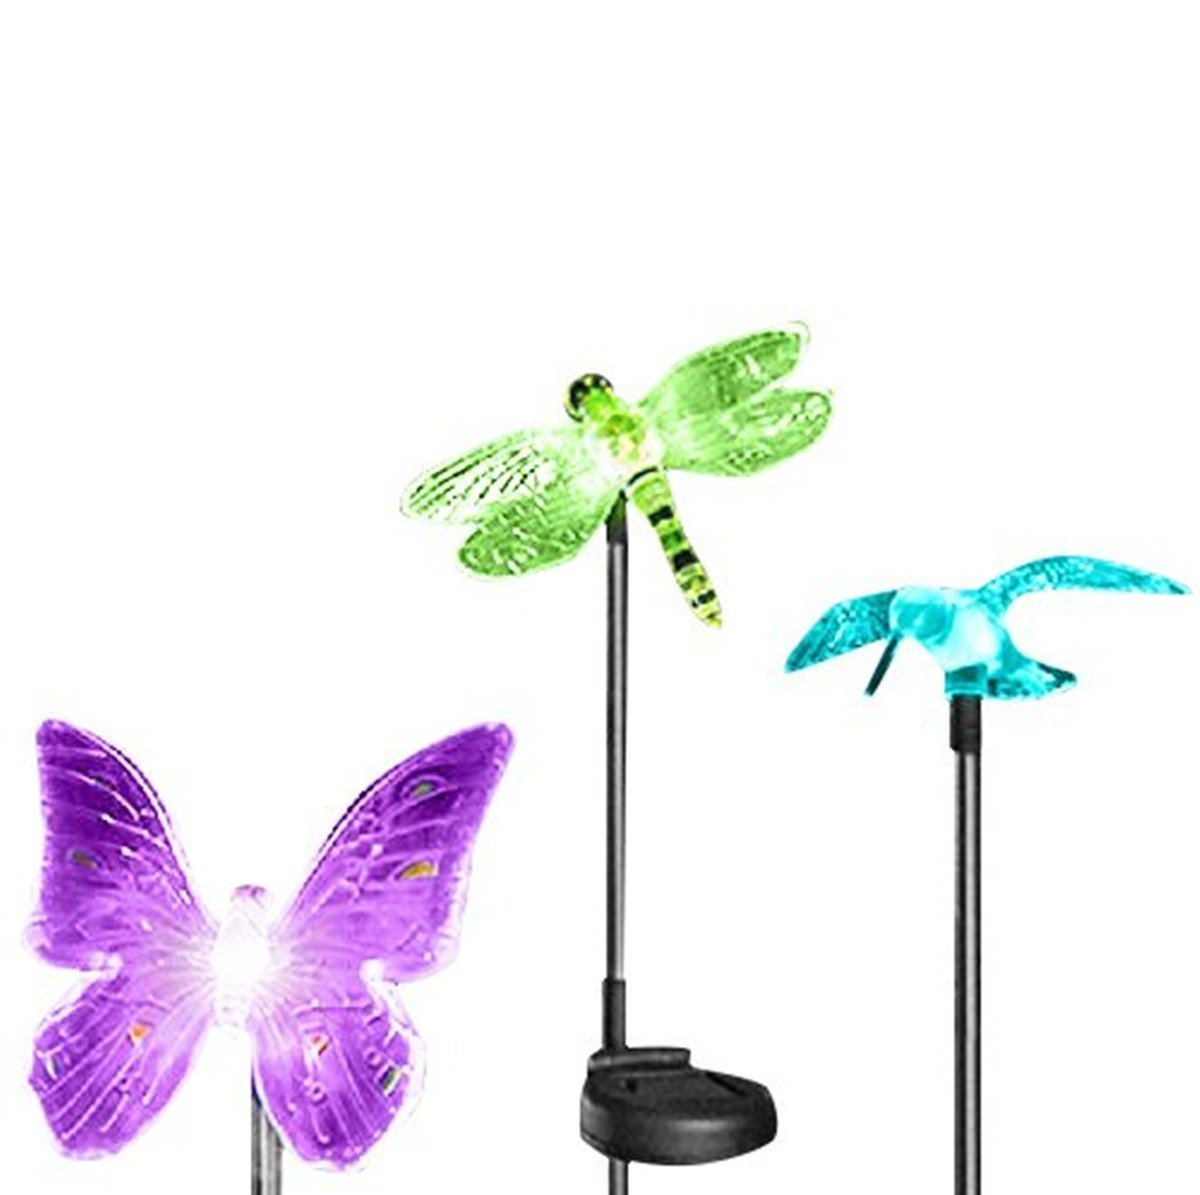 Charmant Solar Garden Stake Lights By FirstLights Beautiful Clear Butterfly,  Dragonfly, Hummingbird Lit By Magic Color Changing LEDs   Decor   Patio    Outdoors ...